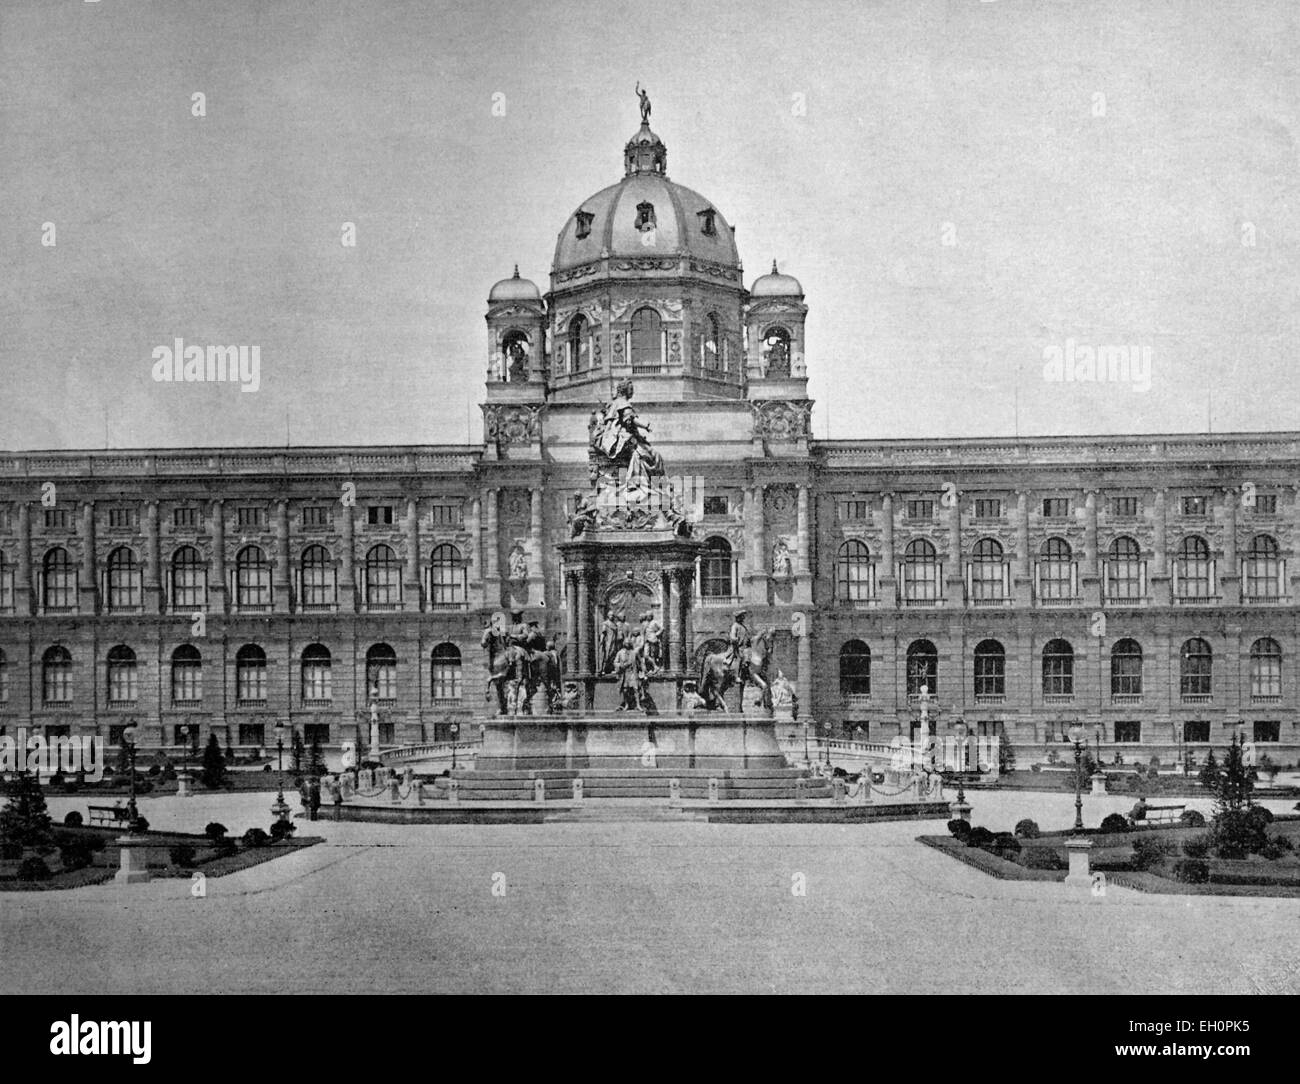 Early autotype of the Kunsthistorisches Museum of Art History, Vienna, Austria, historical photo, 1884 Stock Photo